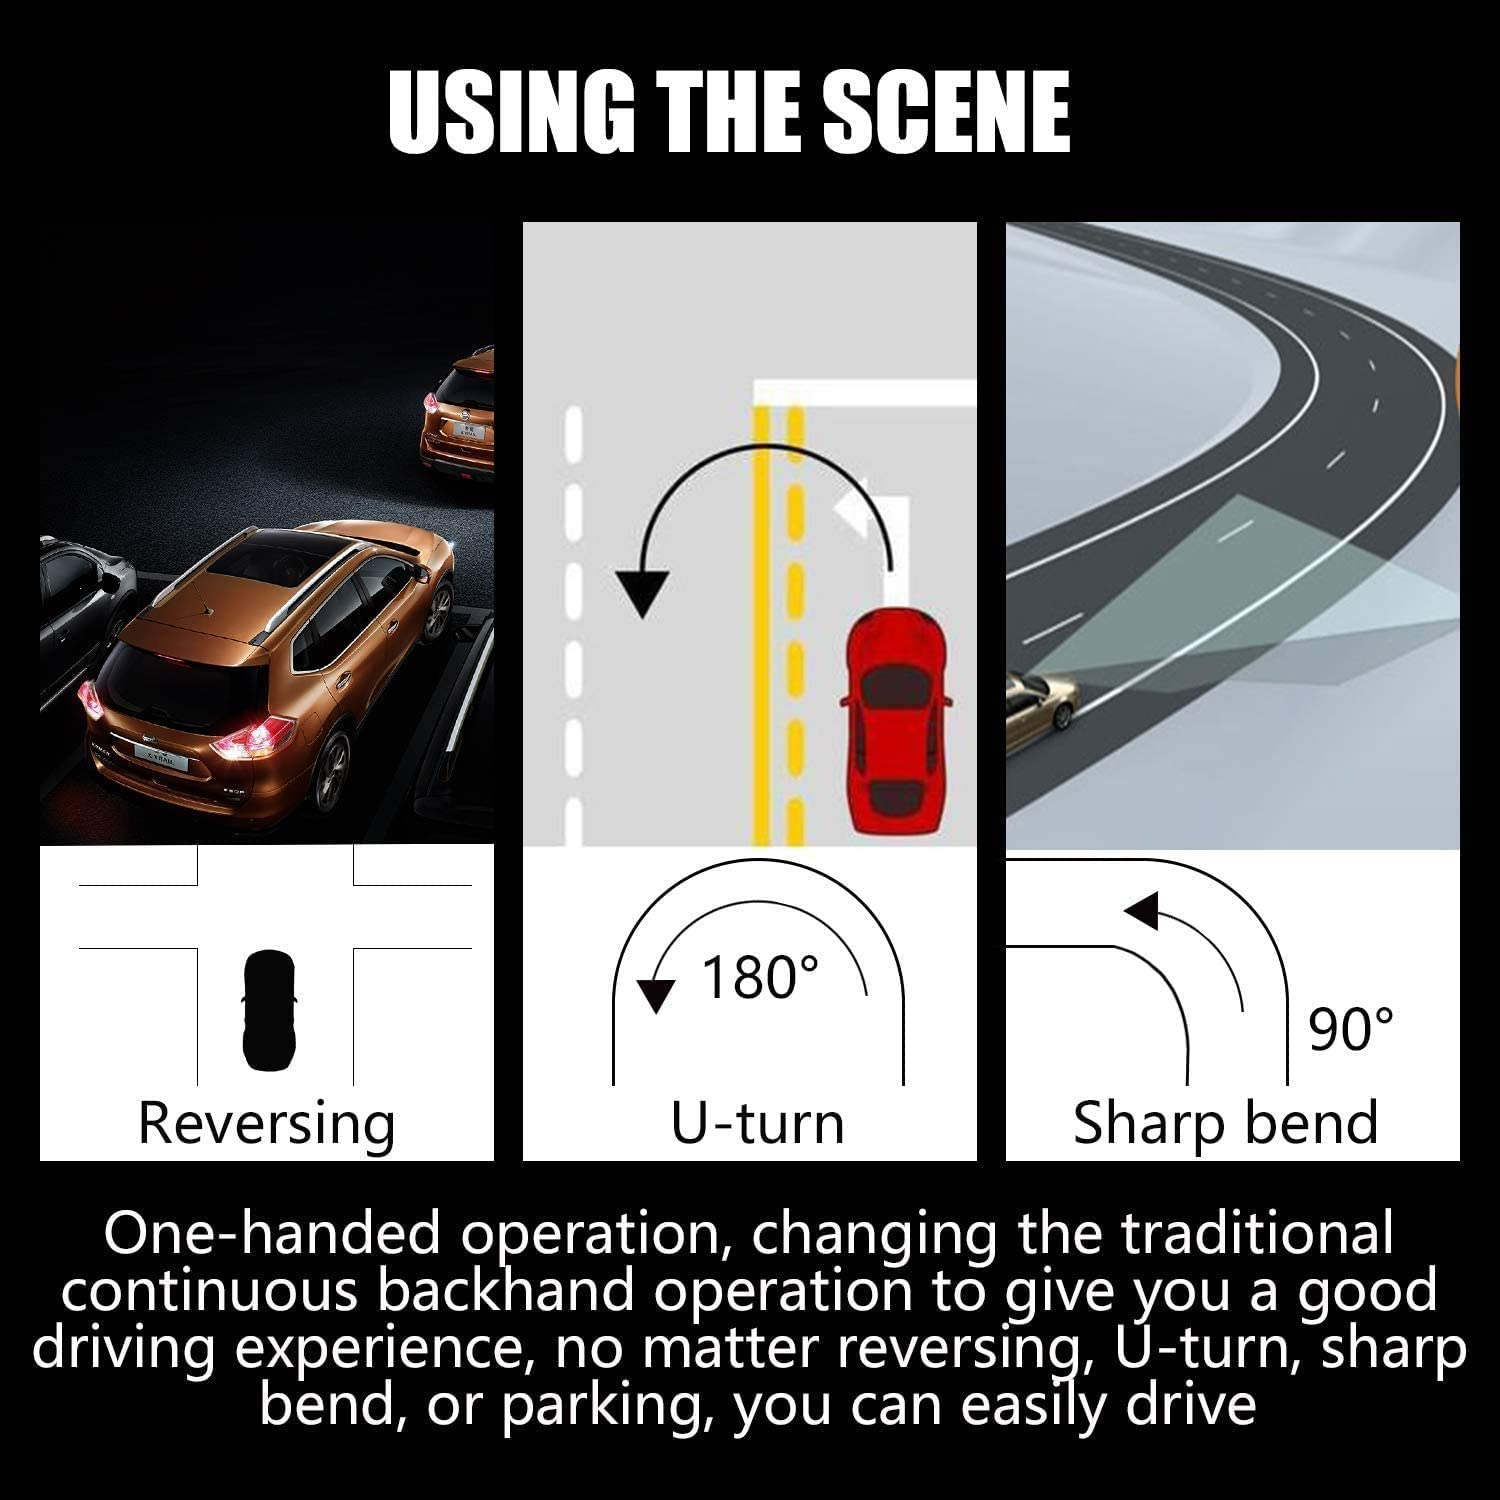 3//Y SNM Upgraded Steering Wheel Booster for Tesla Autopilot FSD Auto Assisted Driving AP Aid Control Handle Car Vehicle Steering Wheel Auxiliary Booster